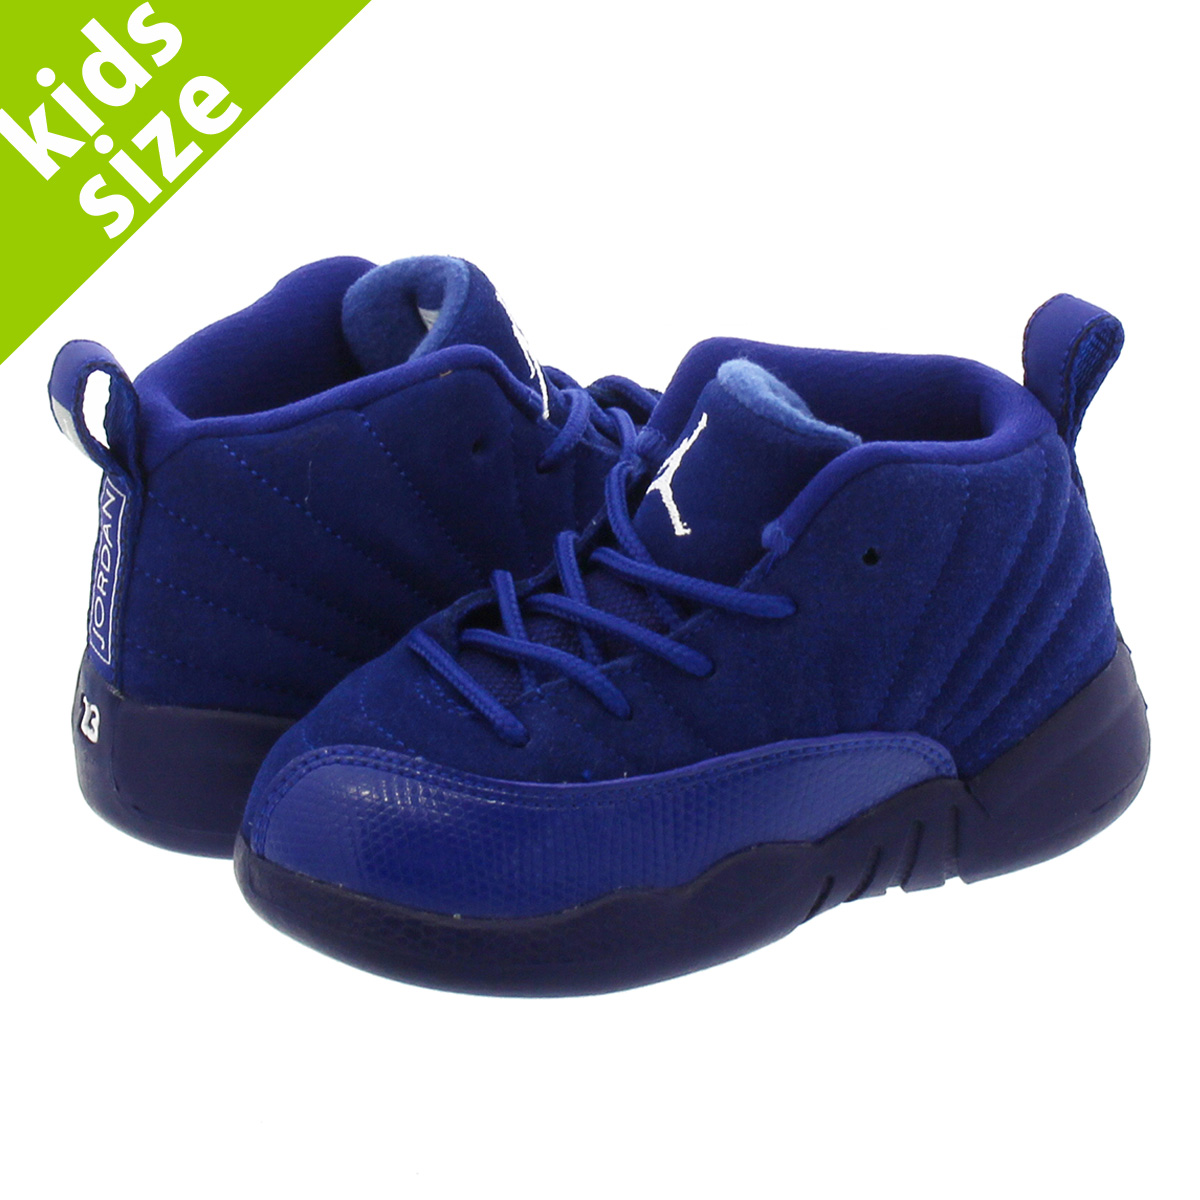 low priced f35a8 493e4 Categories. « All Categories · Kids, Baby & Maternity · Kids · Shoes ·  Sneakers · NIKE AIR JORDAN 12 RETRO ...